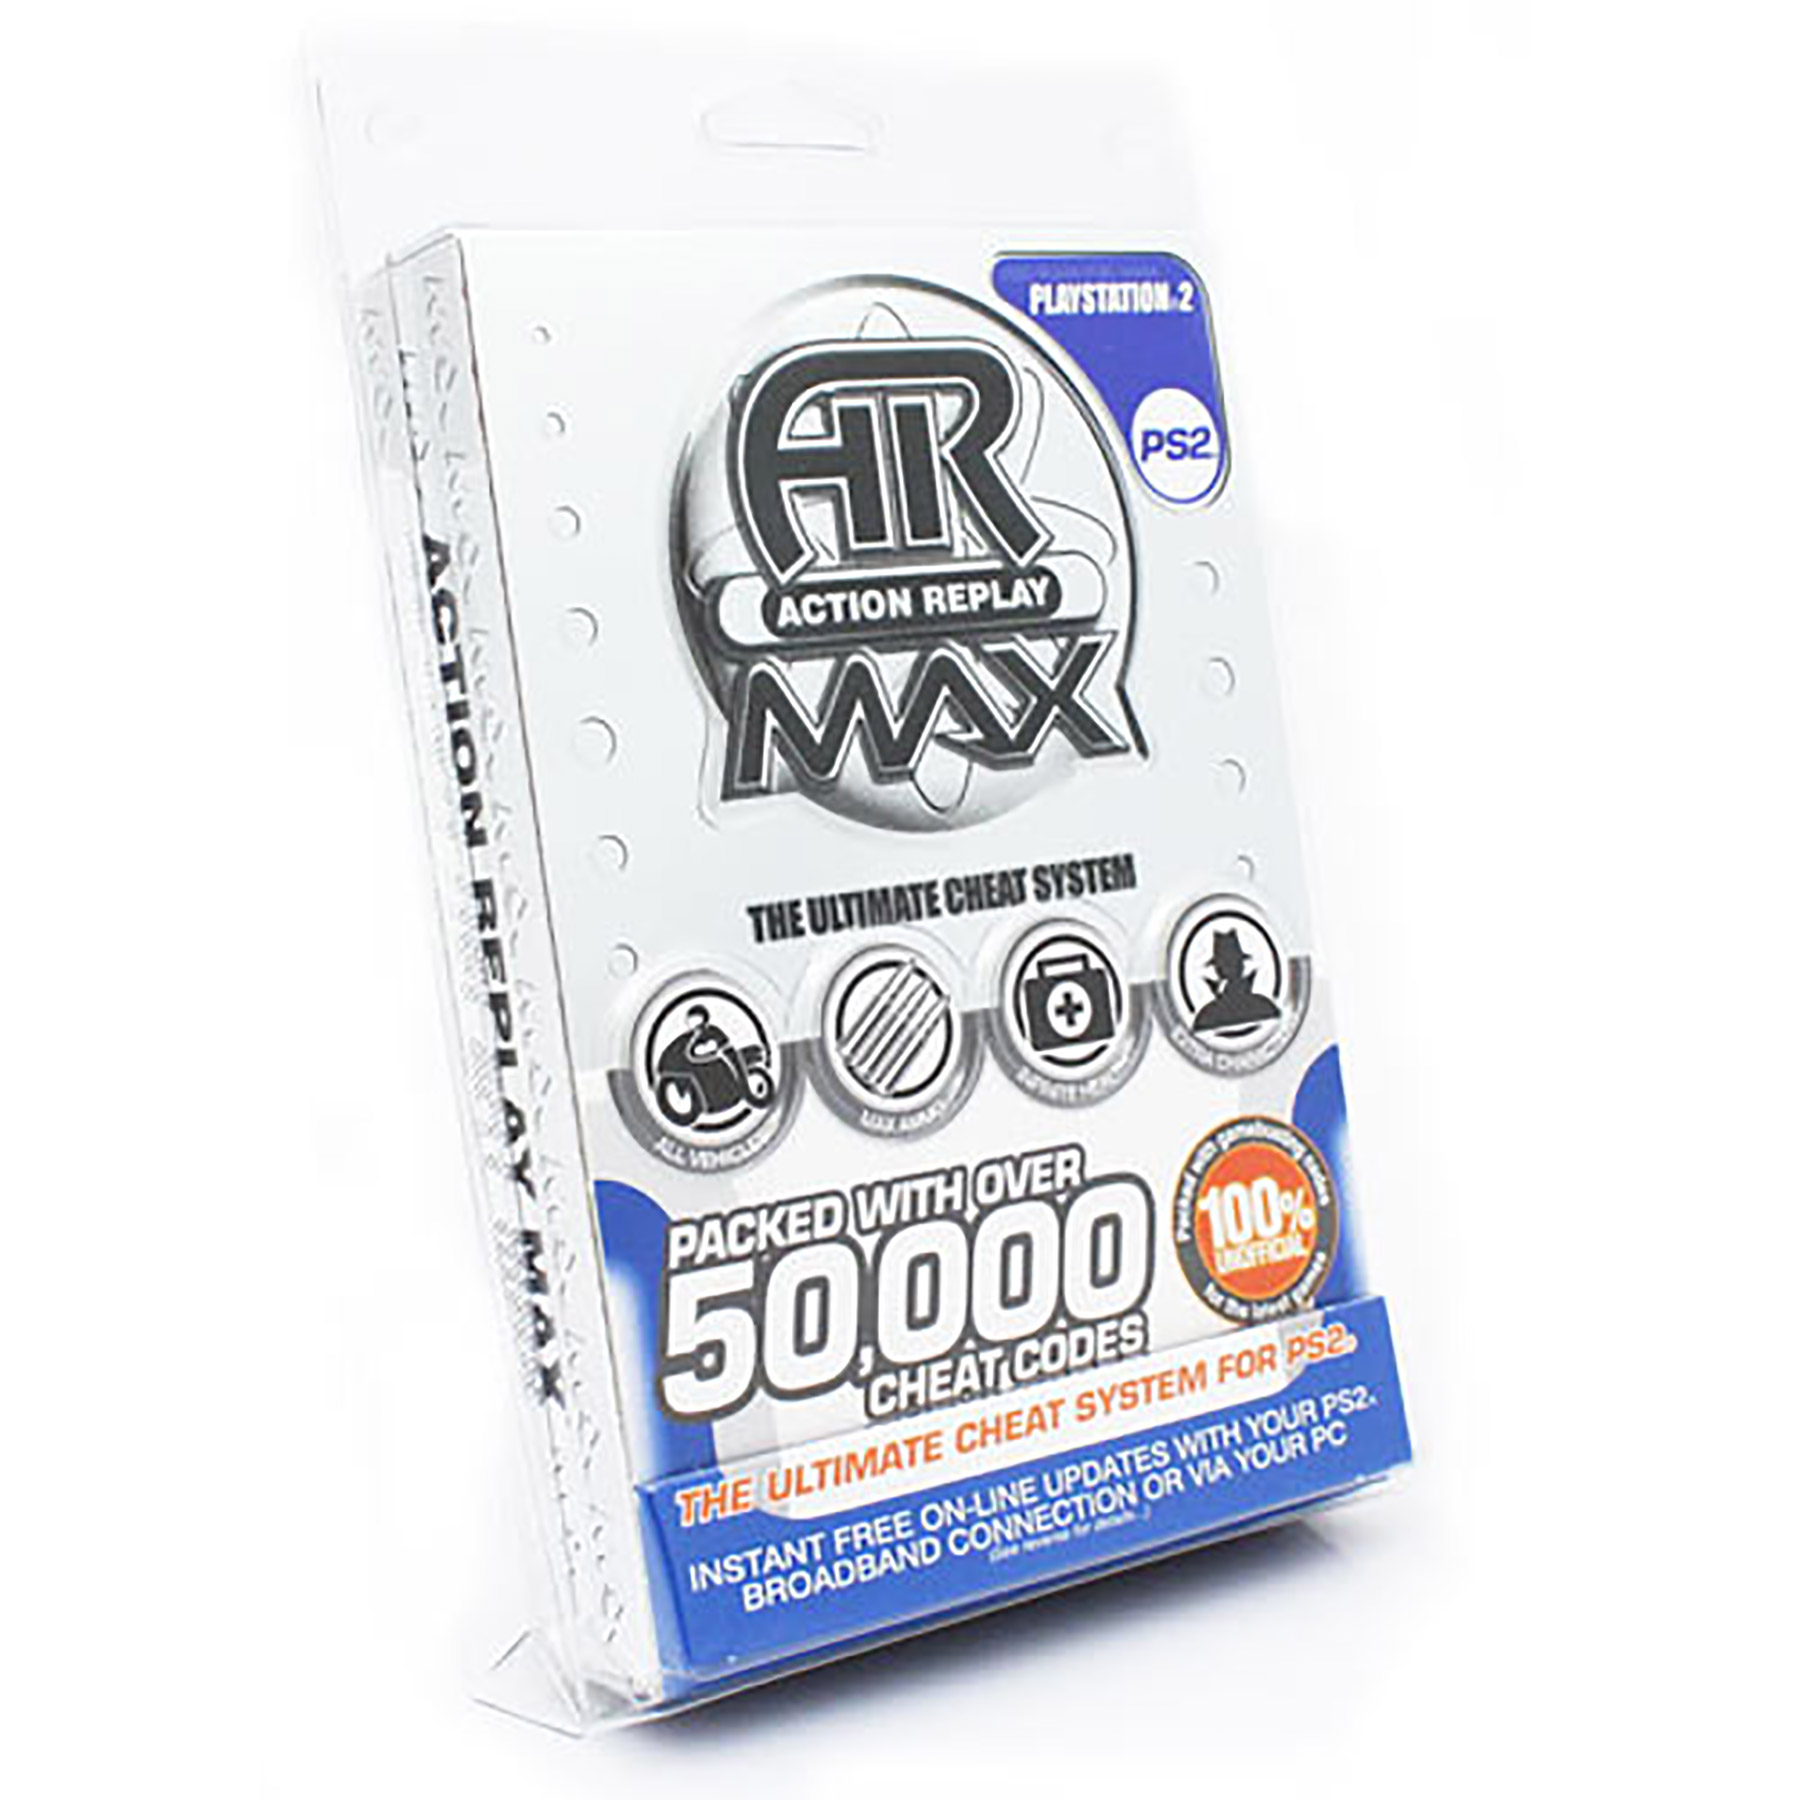 Action Replay Max AKA PS2 Action Replay Cheat Codes Device